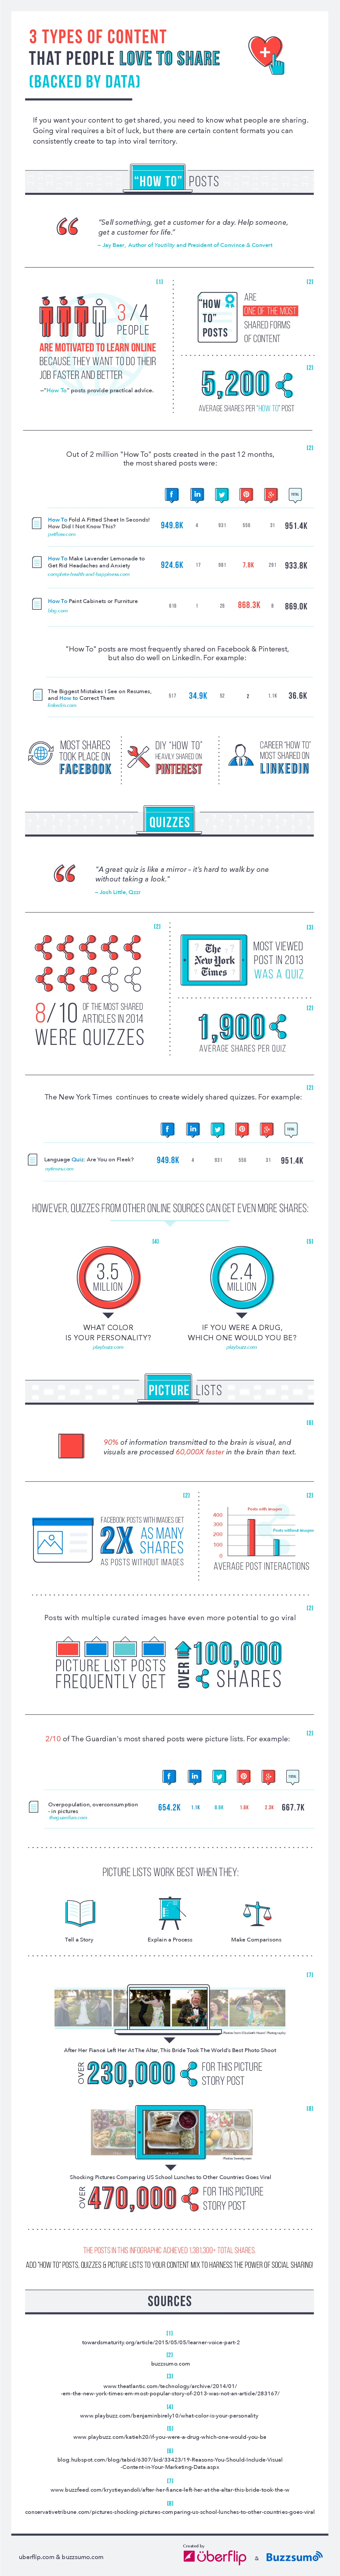 3-types-of-content-that-people-love-to-share-backed-by-data-infographic.jpg